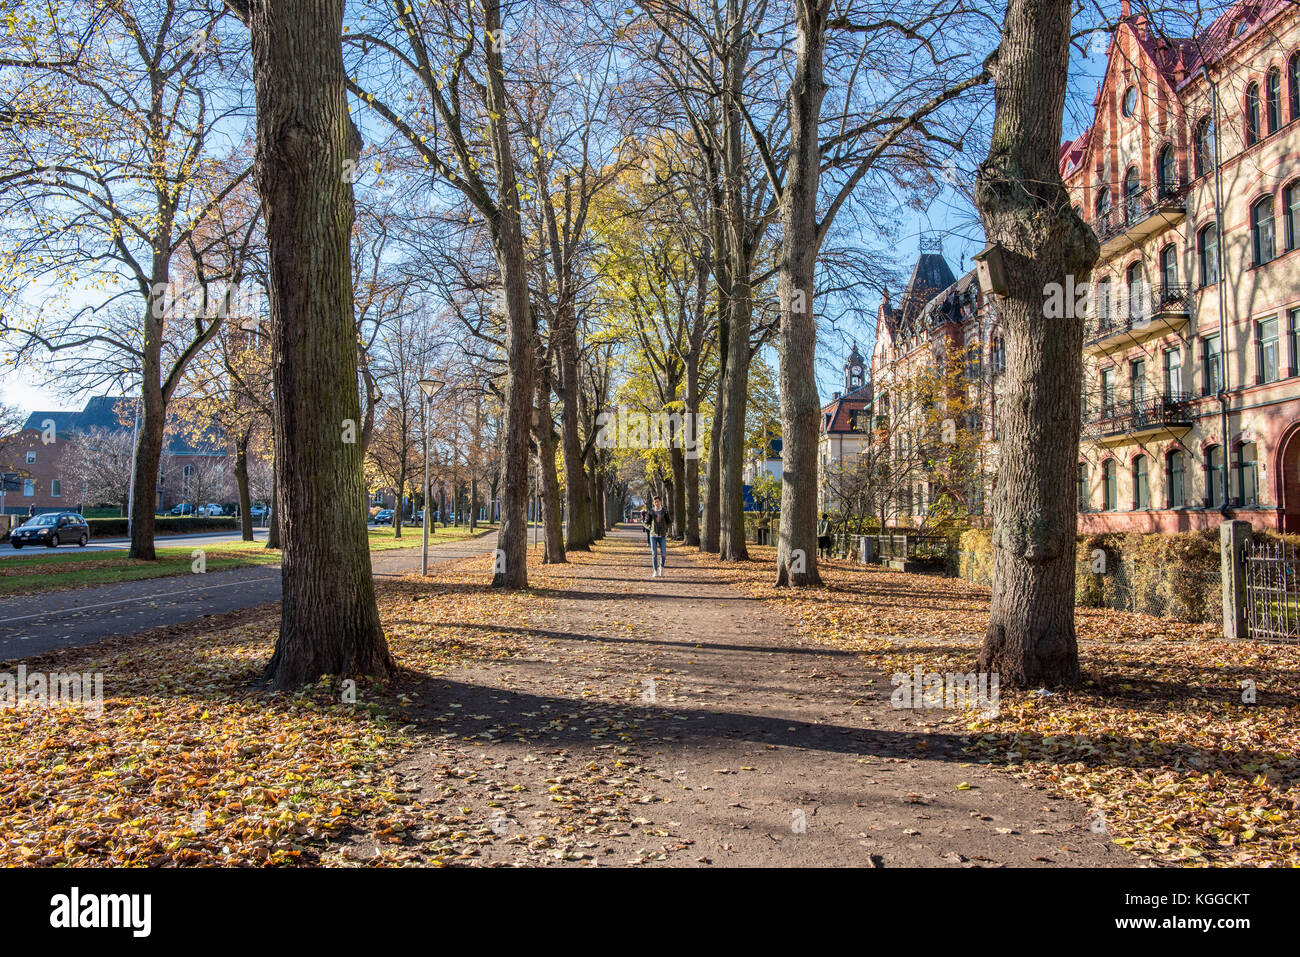 The Southern Promenade  in Norrkoping. Norrkoping is a historic industrial town and the Boulevards in Paris inspired - Stock Image